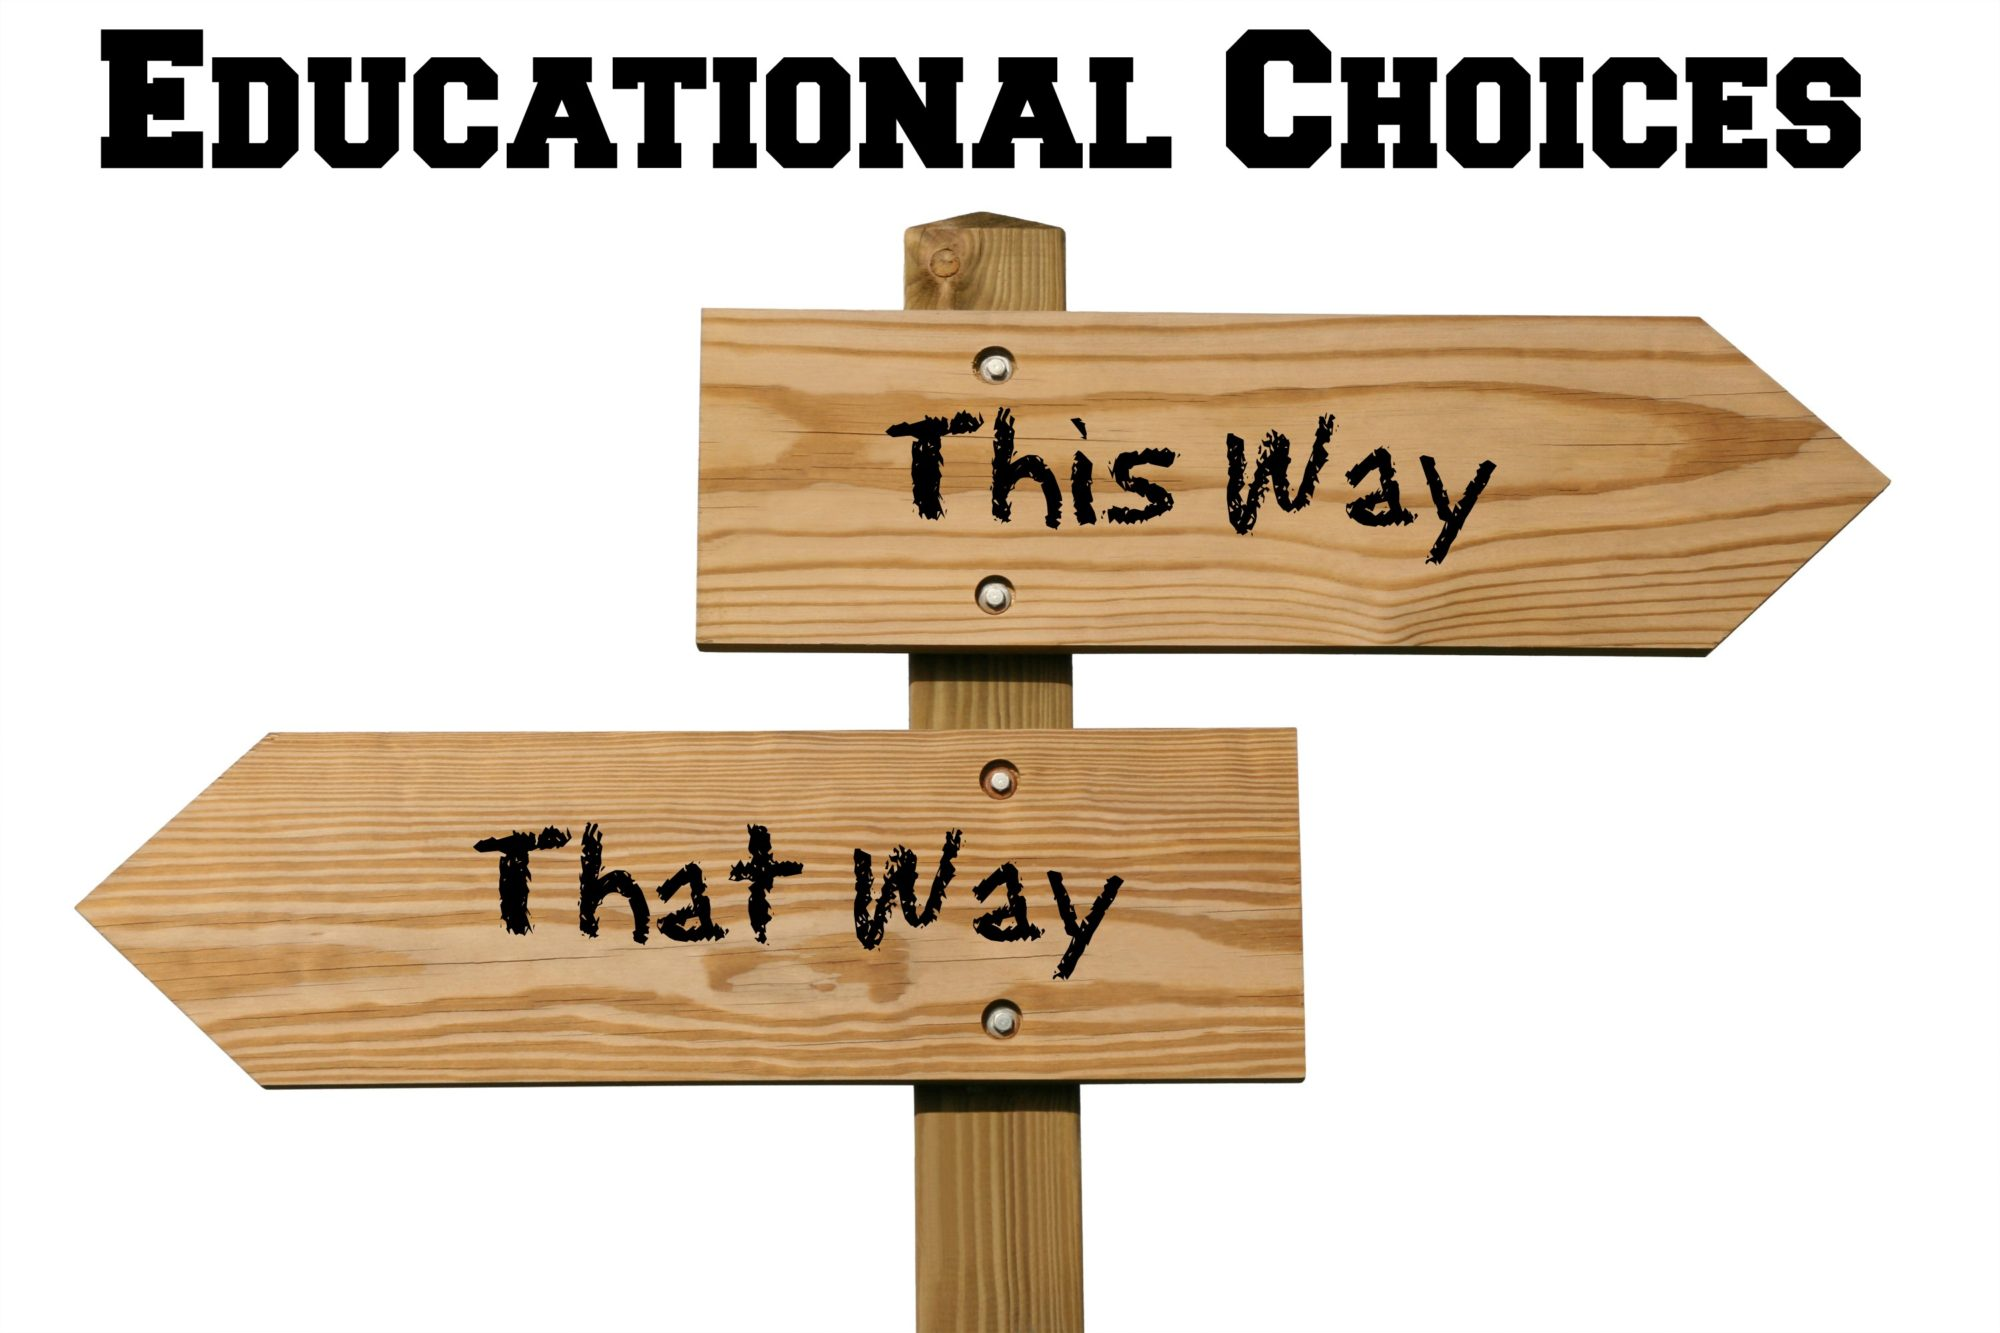 educational choices this way that way